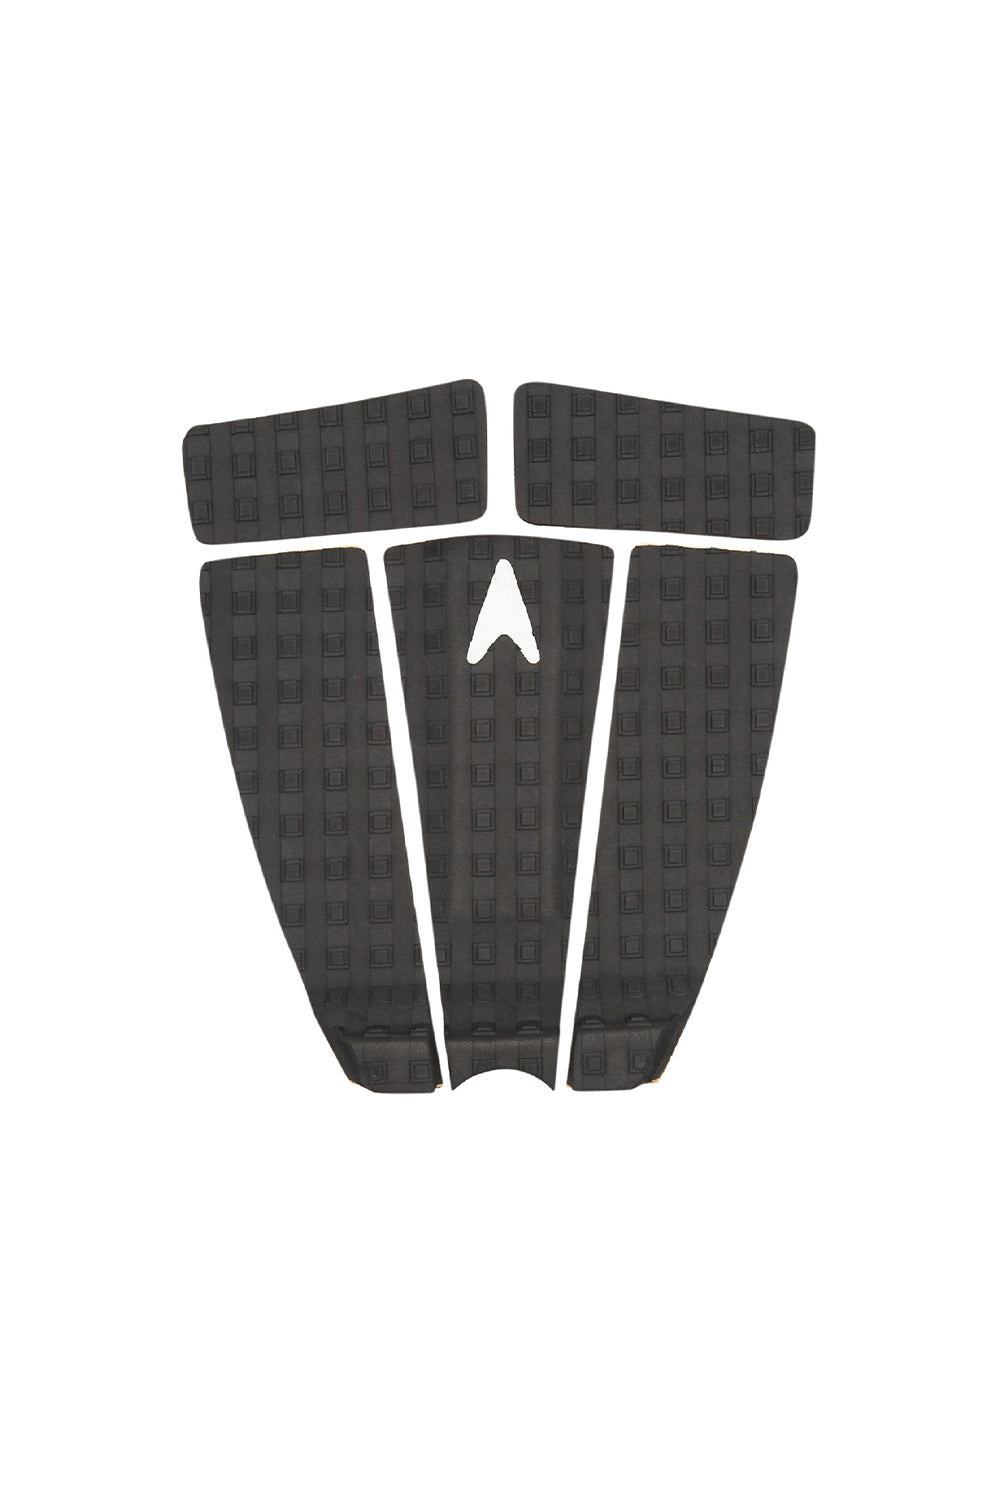 Astro Deck Barney Grip Pad Traction